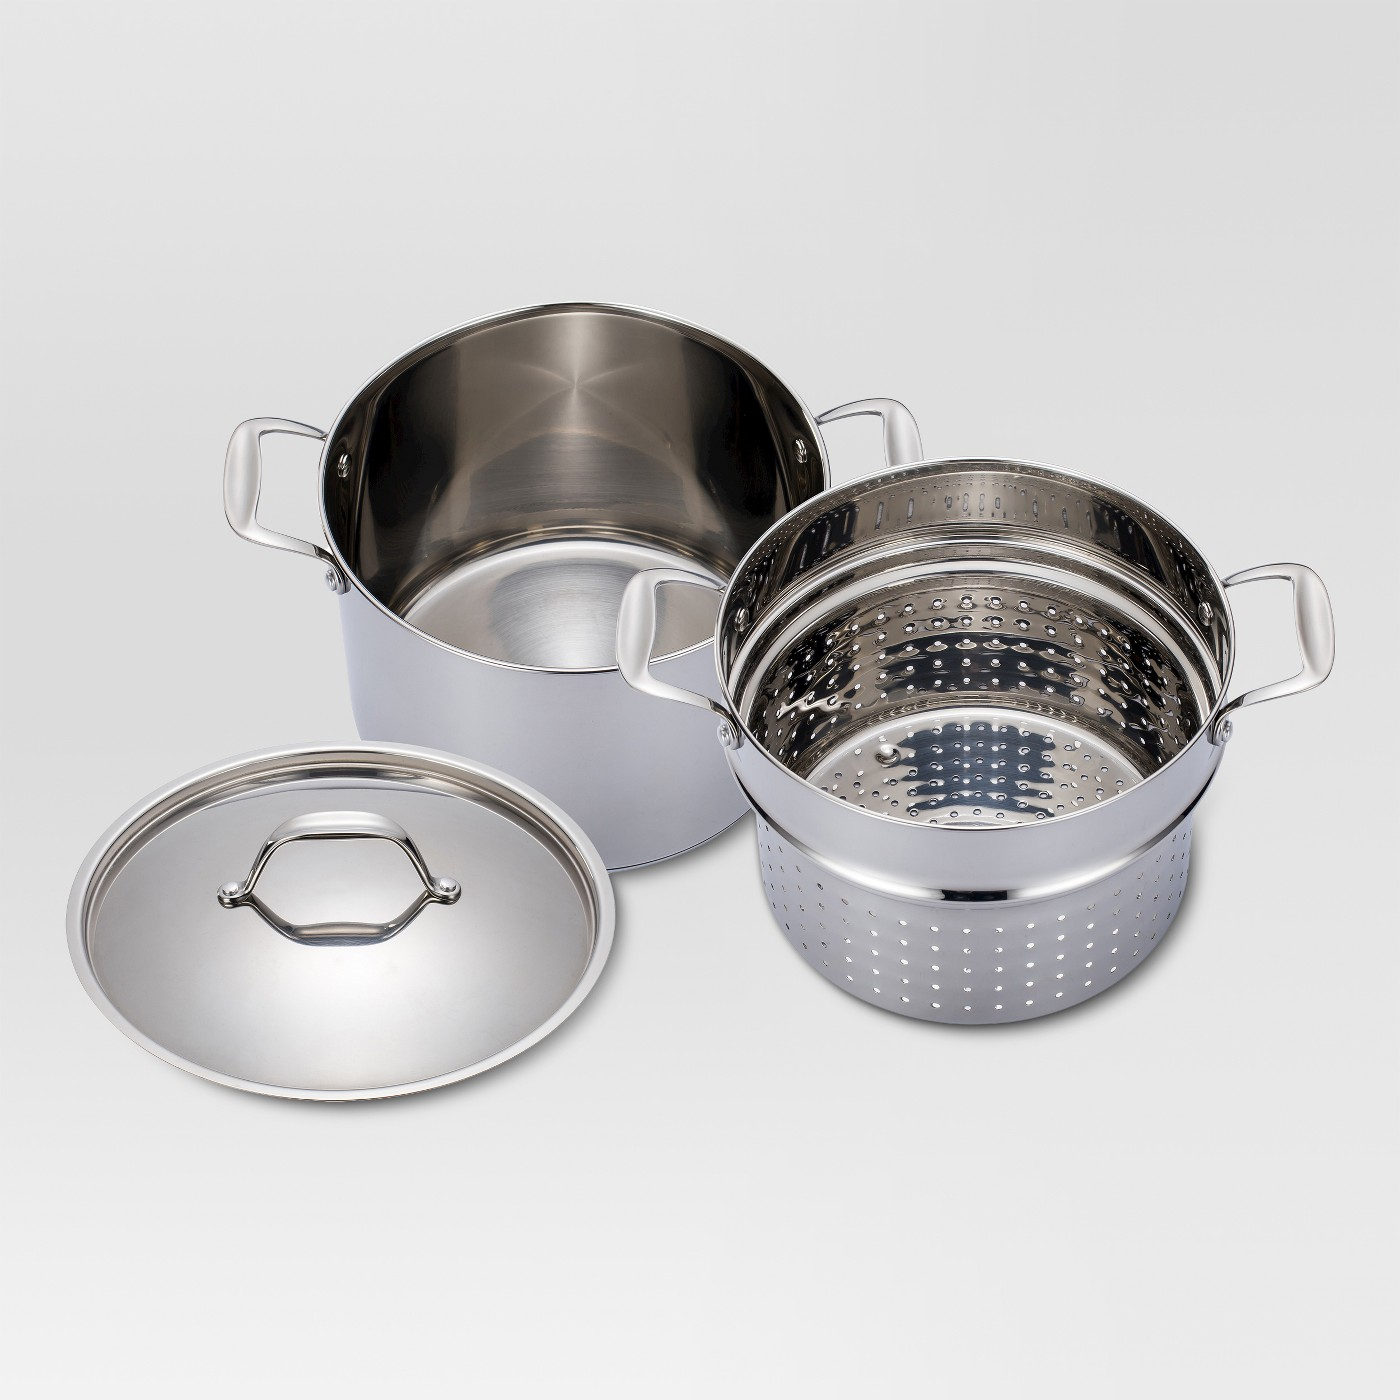 8 Qt Stainless Steel Pasta Pot Threshold Only 1749 Down From 3499